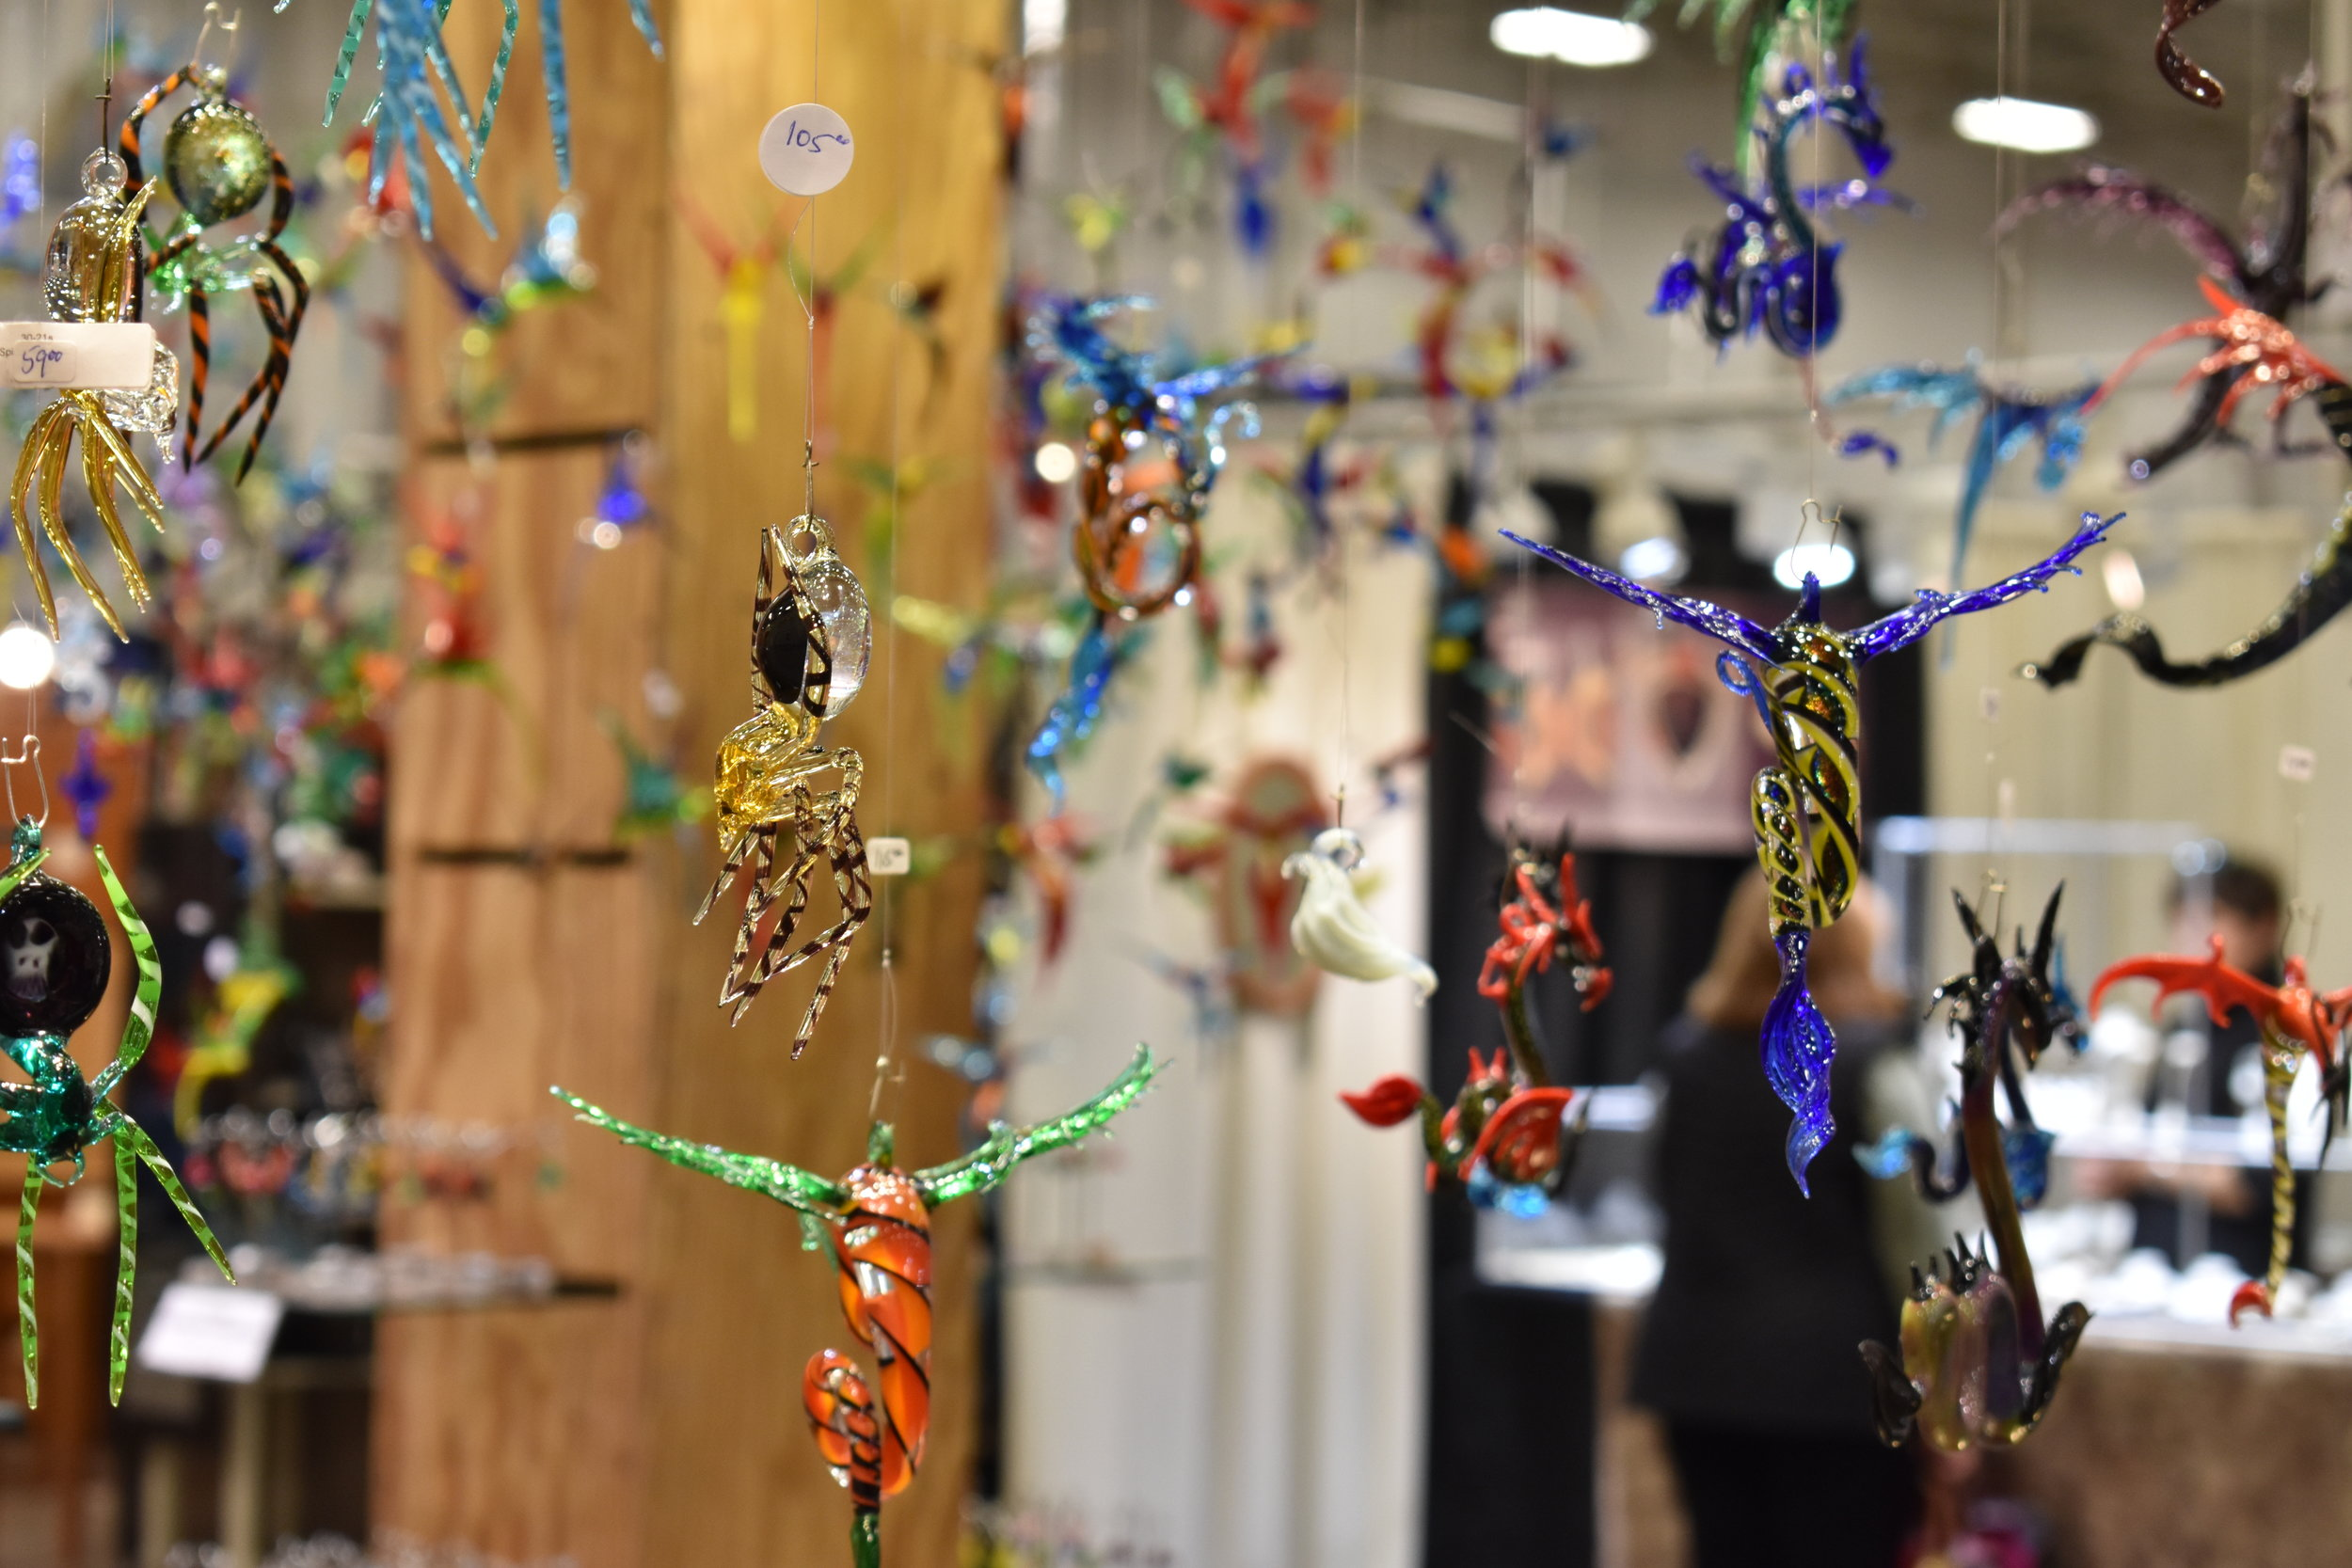 Decorative items for sale are pictured at the Sugarloaf Crafts Festival at the Dulles Expo Center in Chantilly, Va., Friday, March 23, 2018. (Lindsey Leake/American University)